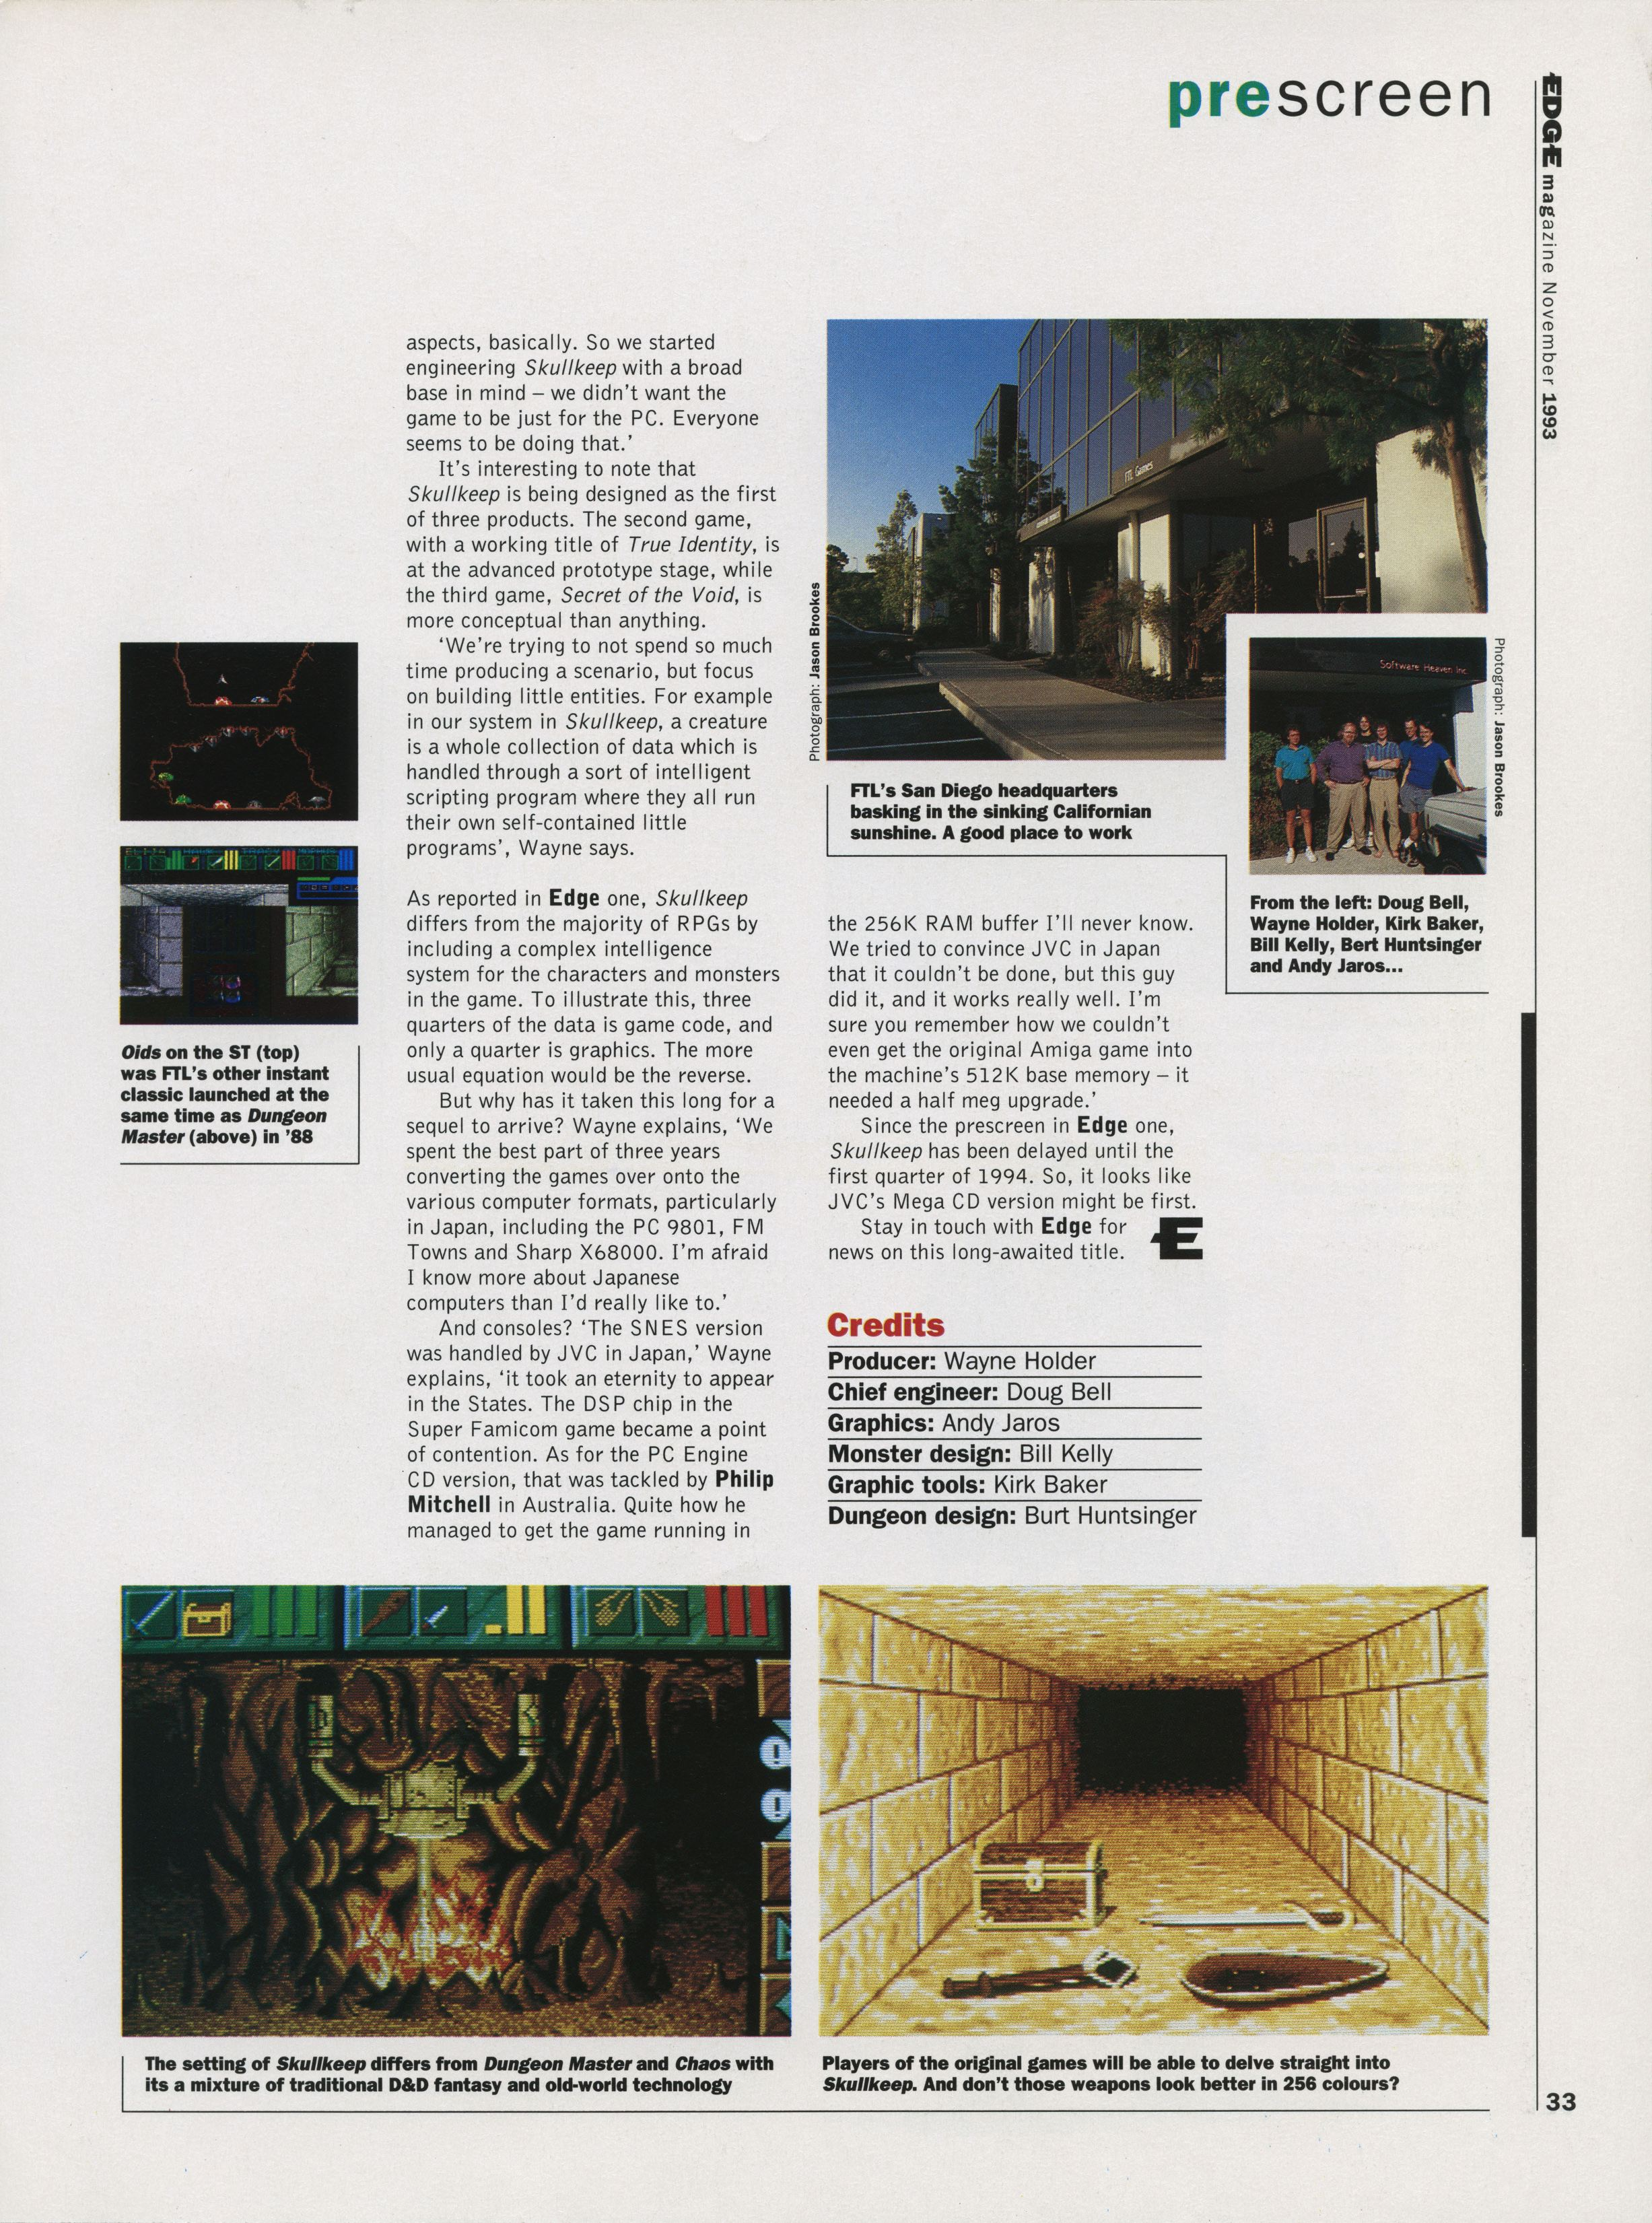 Dungeon Master II for PC Preview published in British magazine 'Edge', Issue #2 November 1993, Page 33